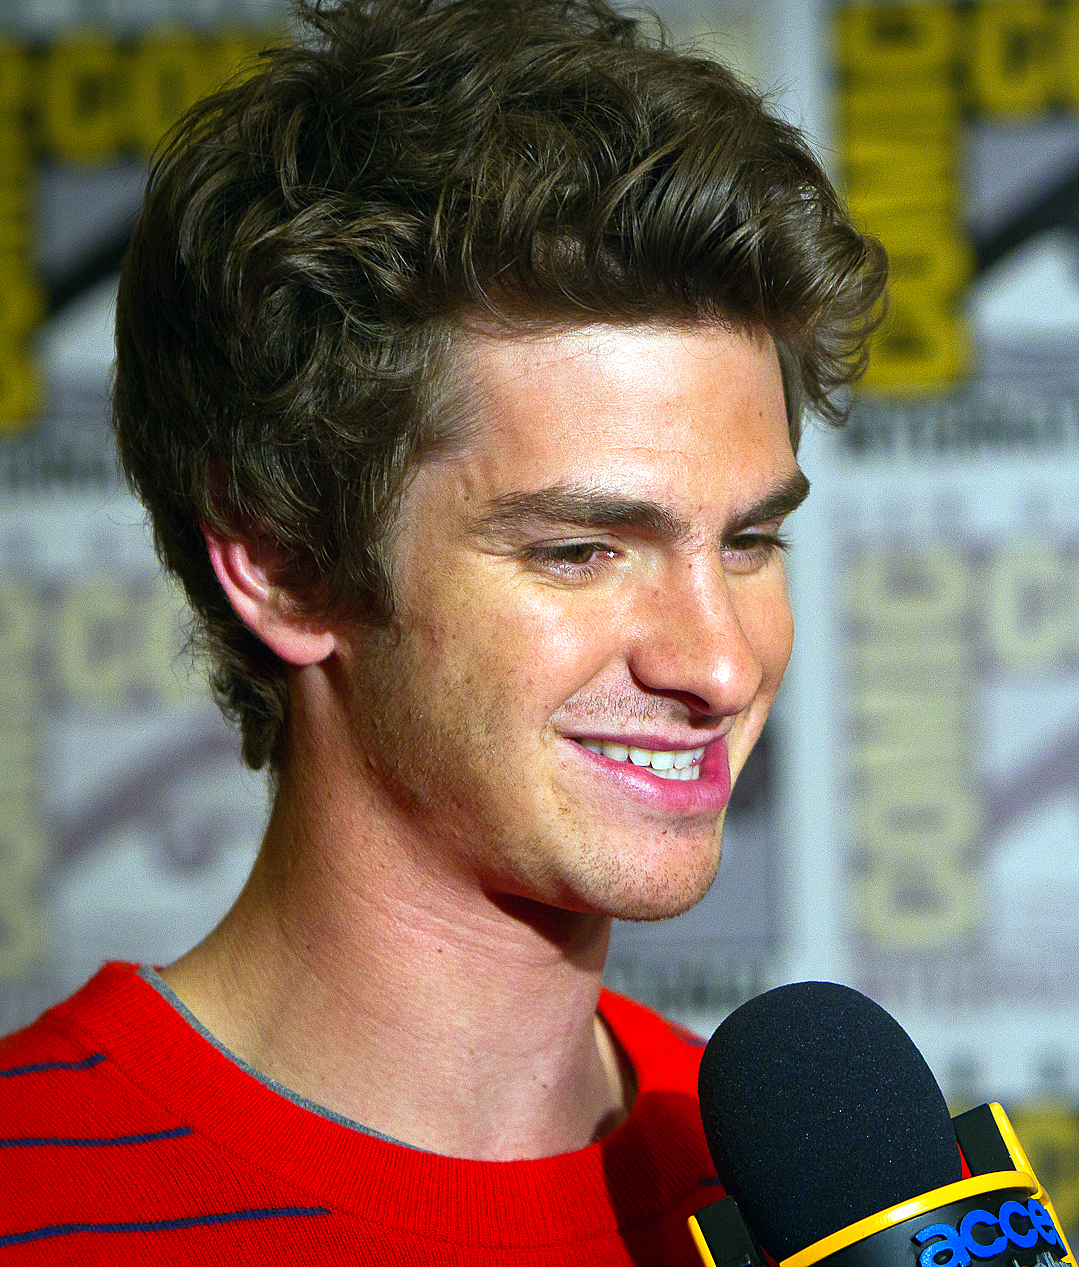 File:Andrew Garfield Comic-Con, 2011.jpg - Wikimedia Commons Andrew Garfield